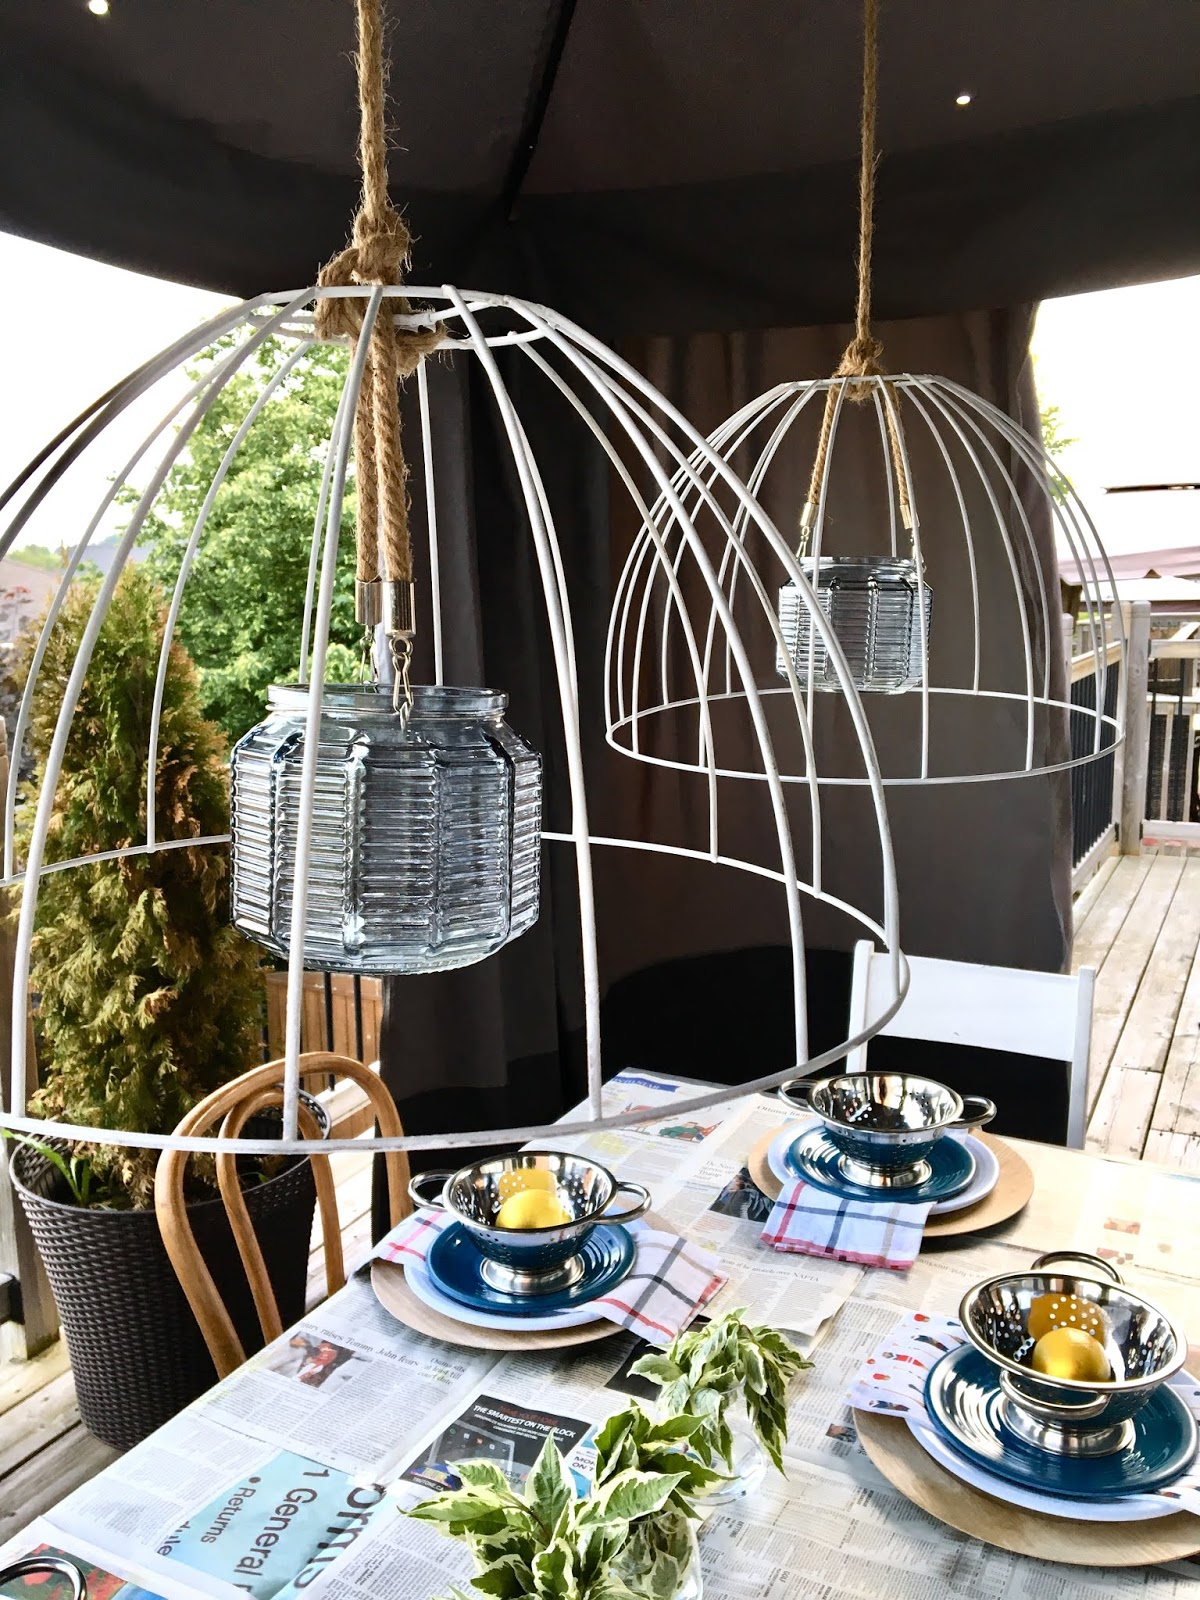 Lobster-dinner-table-setting-KSP-harlow-and-thistle-3